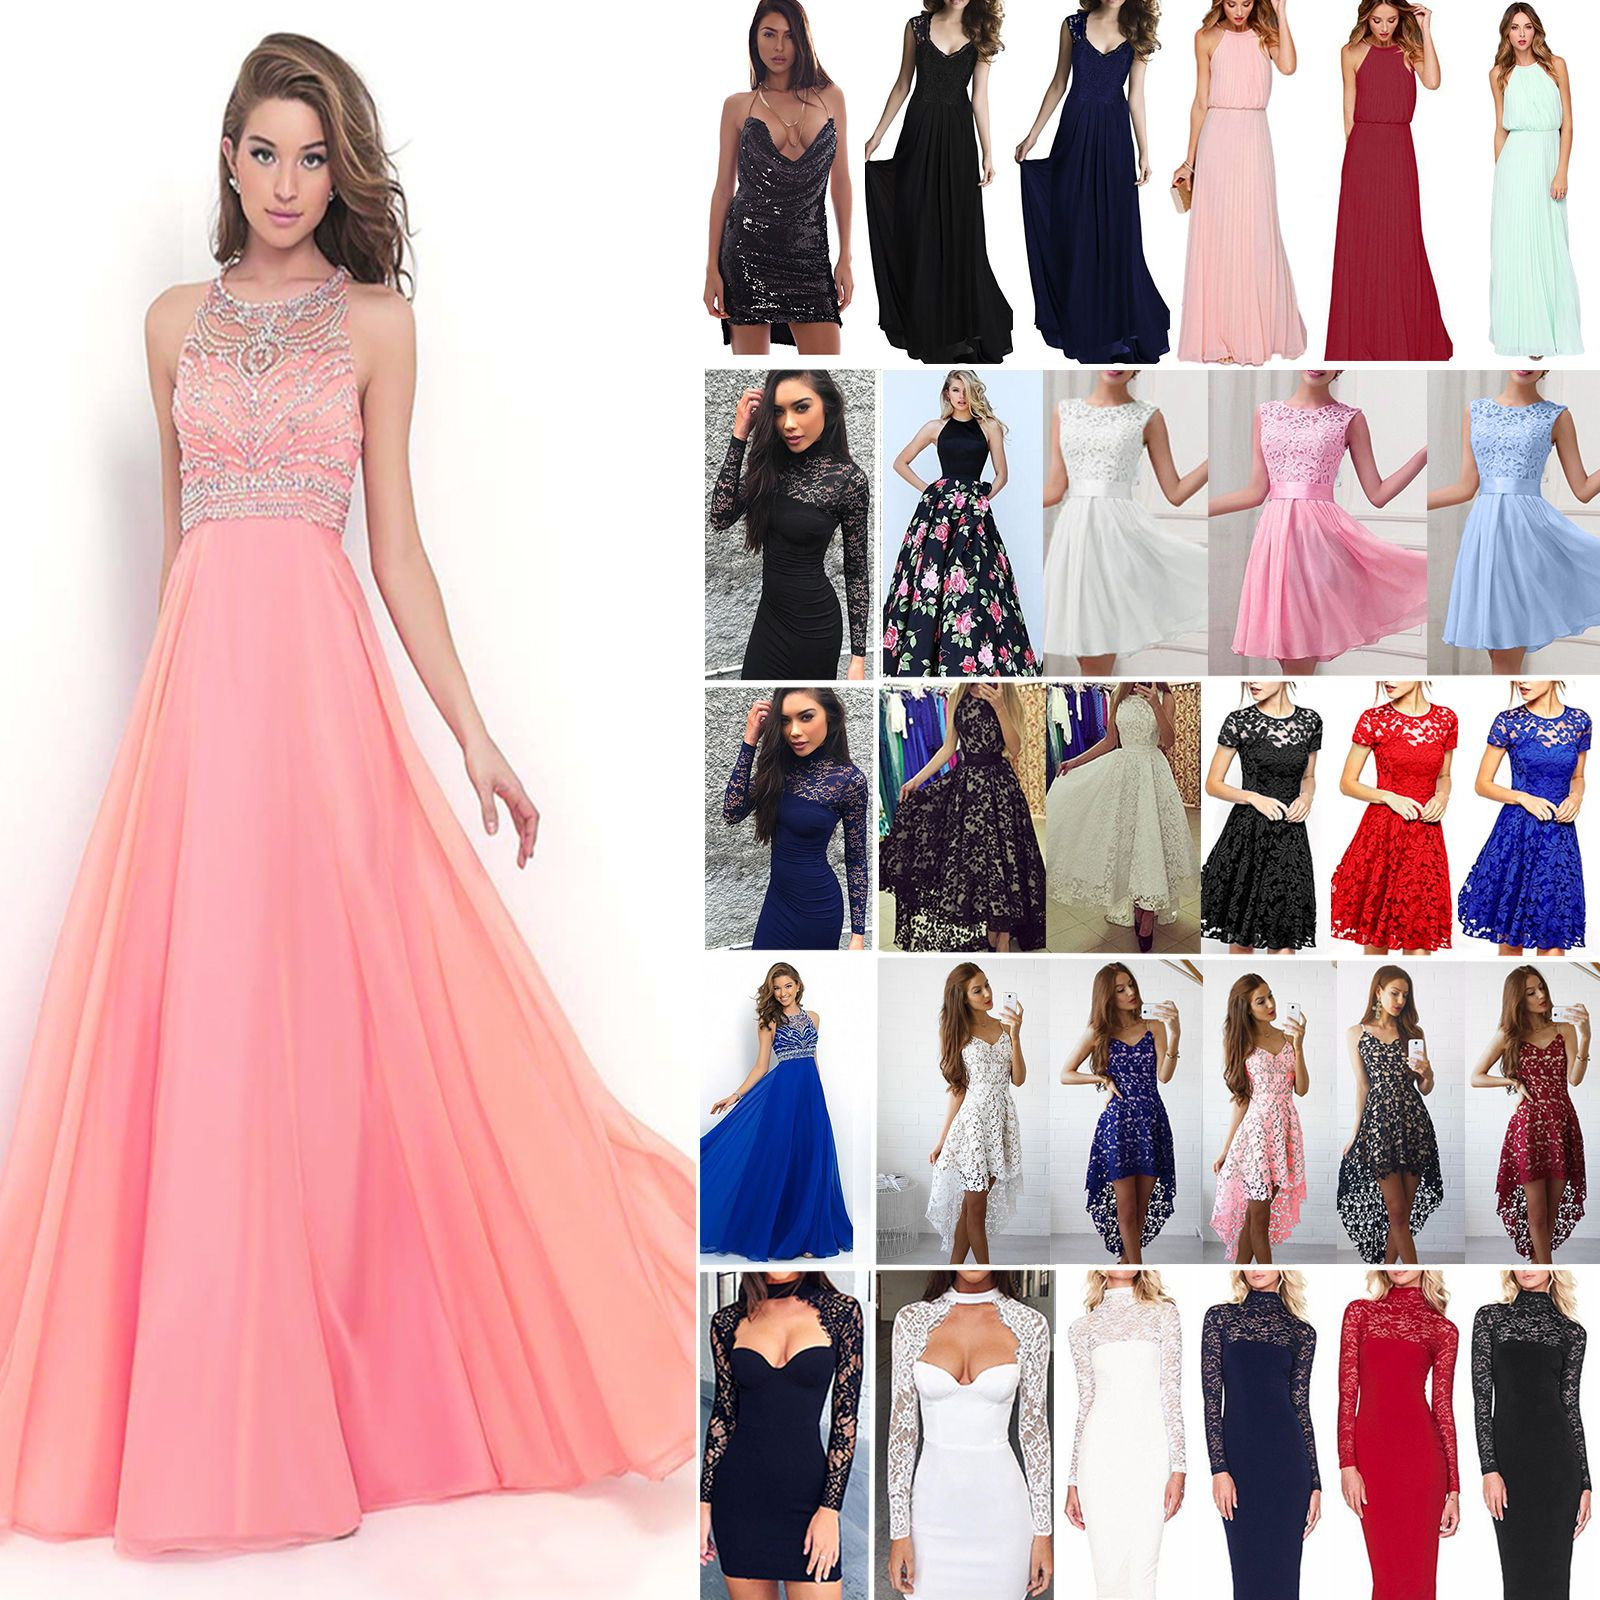 Women Lace Formal Dress Wedding Evening Ball Gown Party Cocktail ...